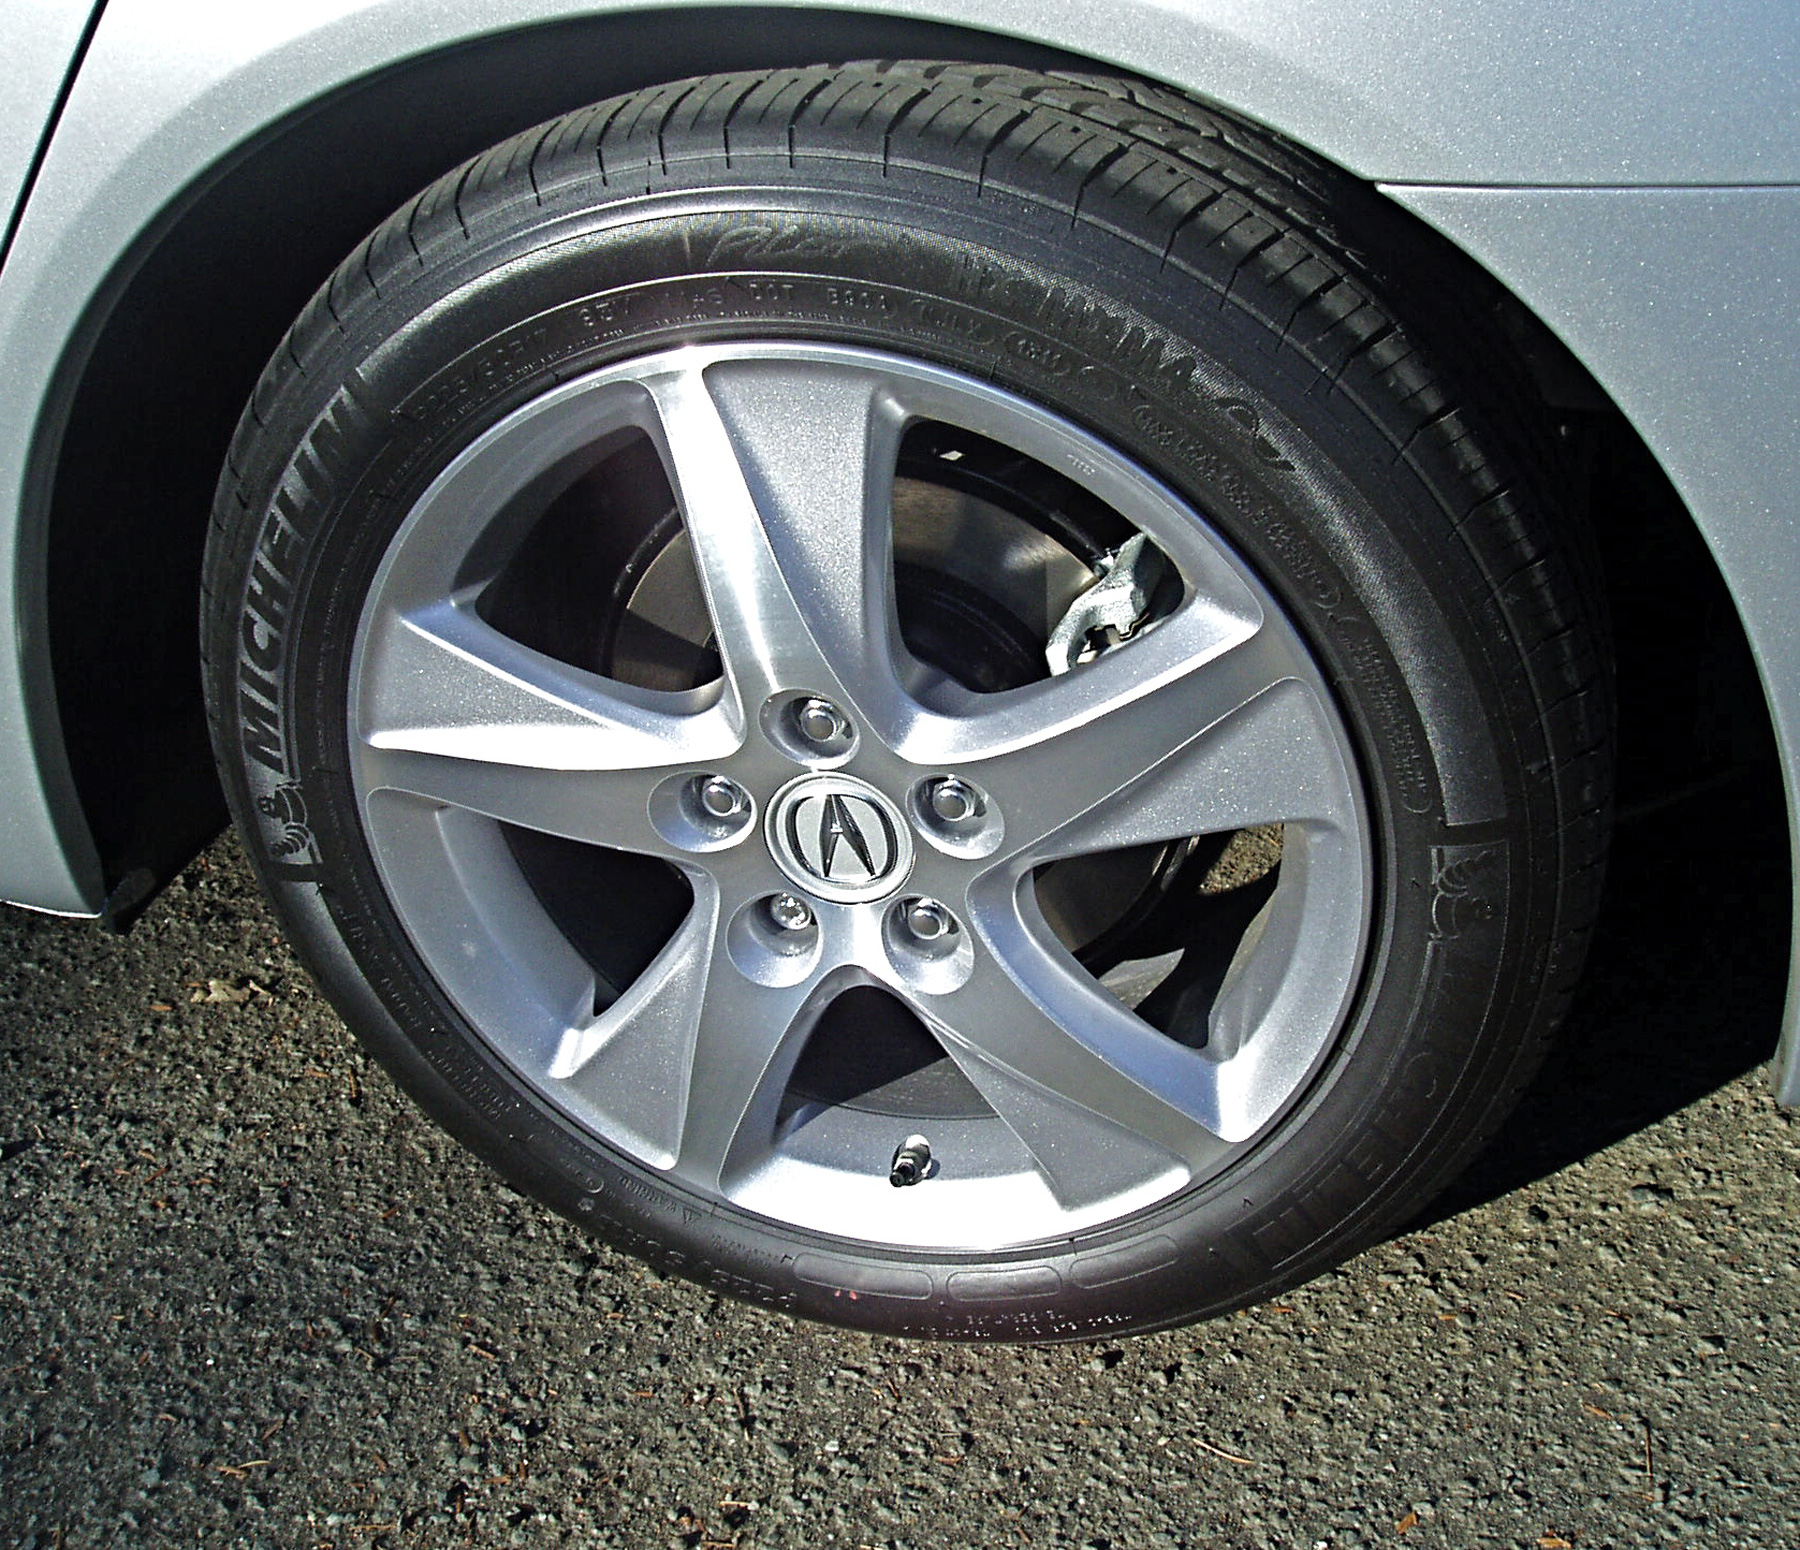 2012 Acura Tsx Special Edition For Sale: Test Drive: 2012 Acura TSX Tech Sedan